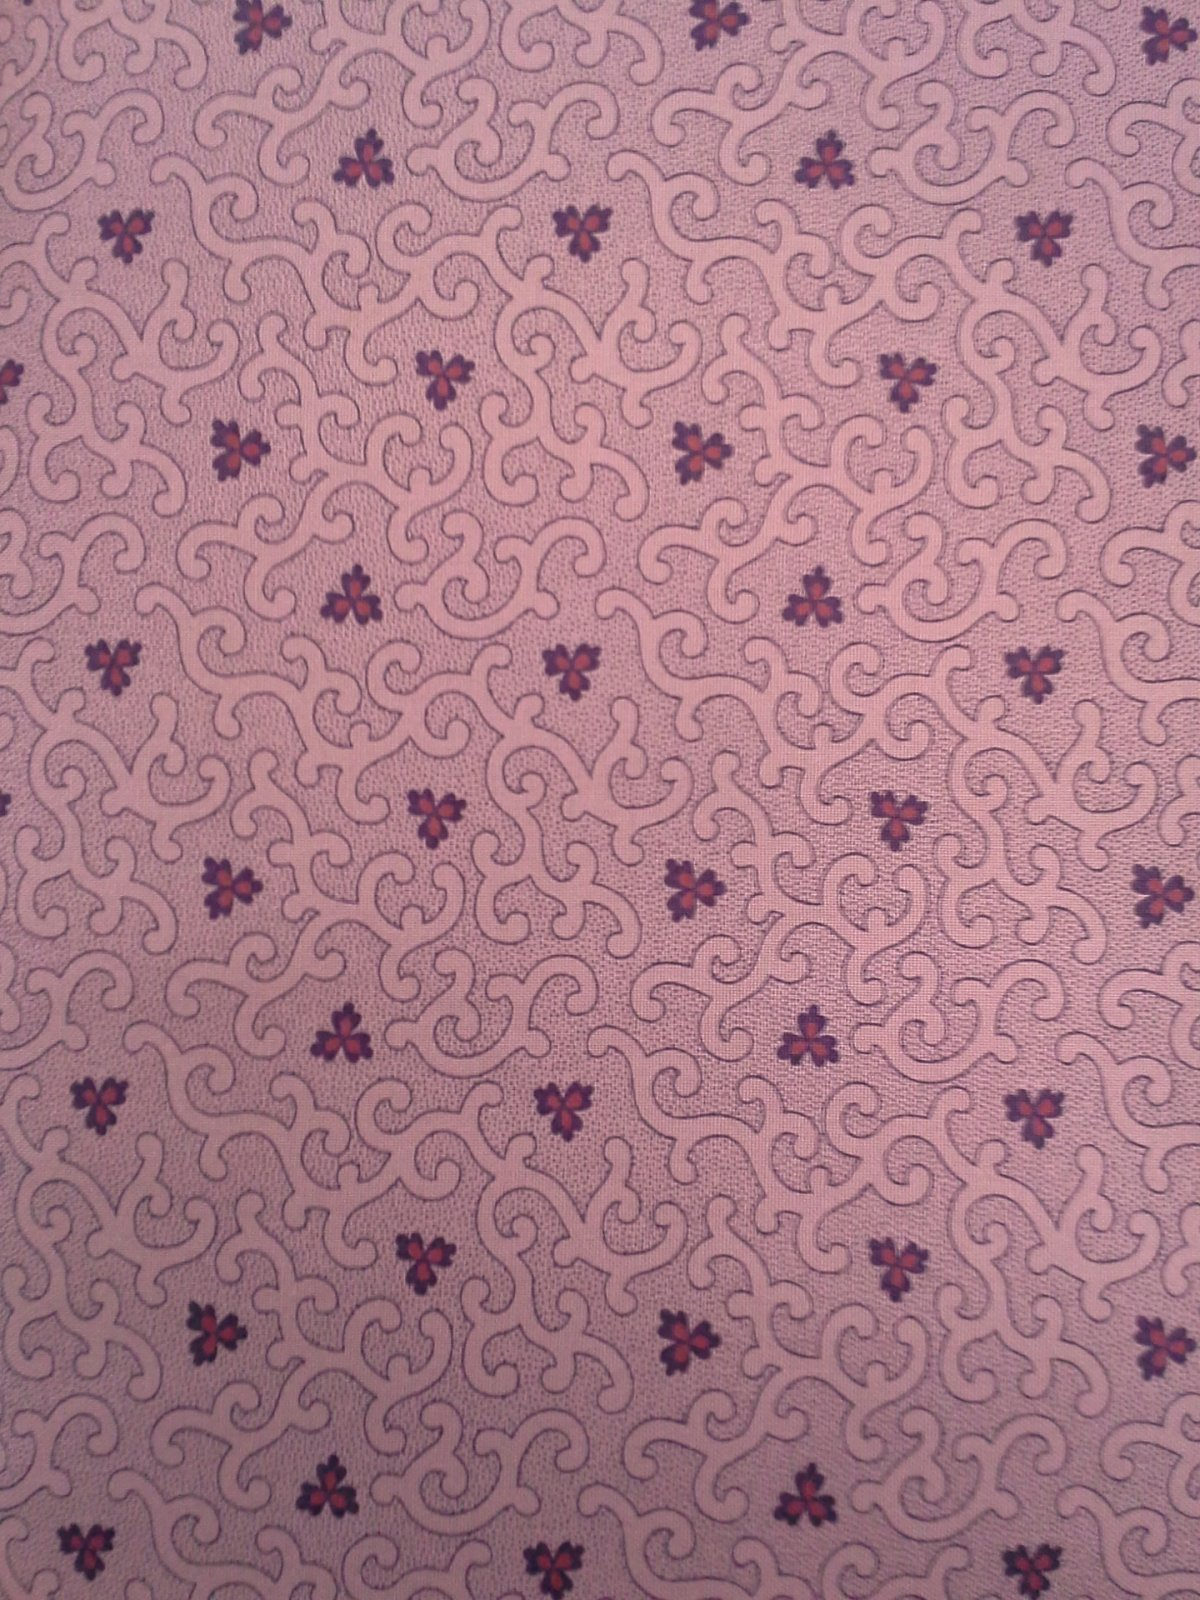 Collections Mill 1892 (Lavender Specks)(F3220)